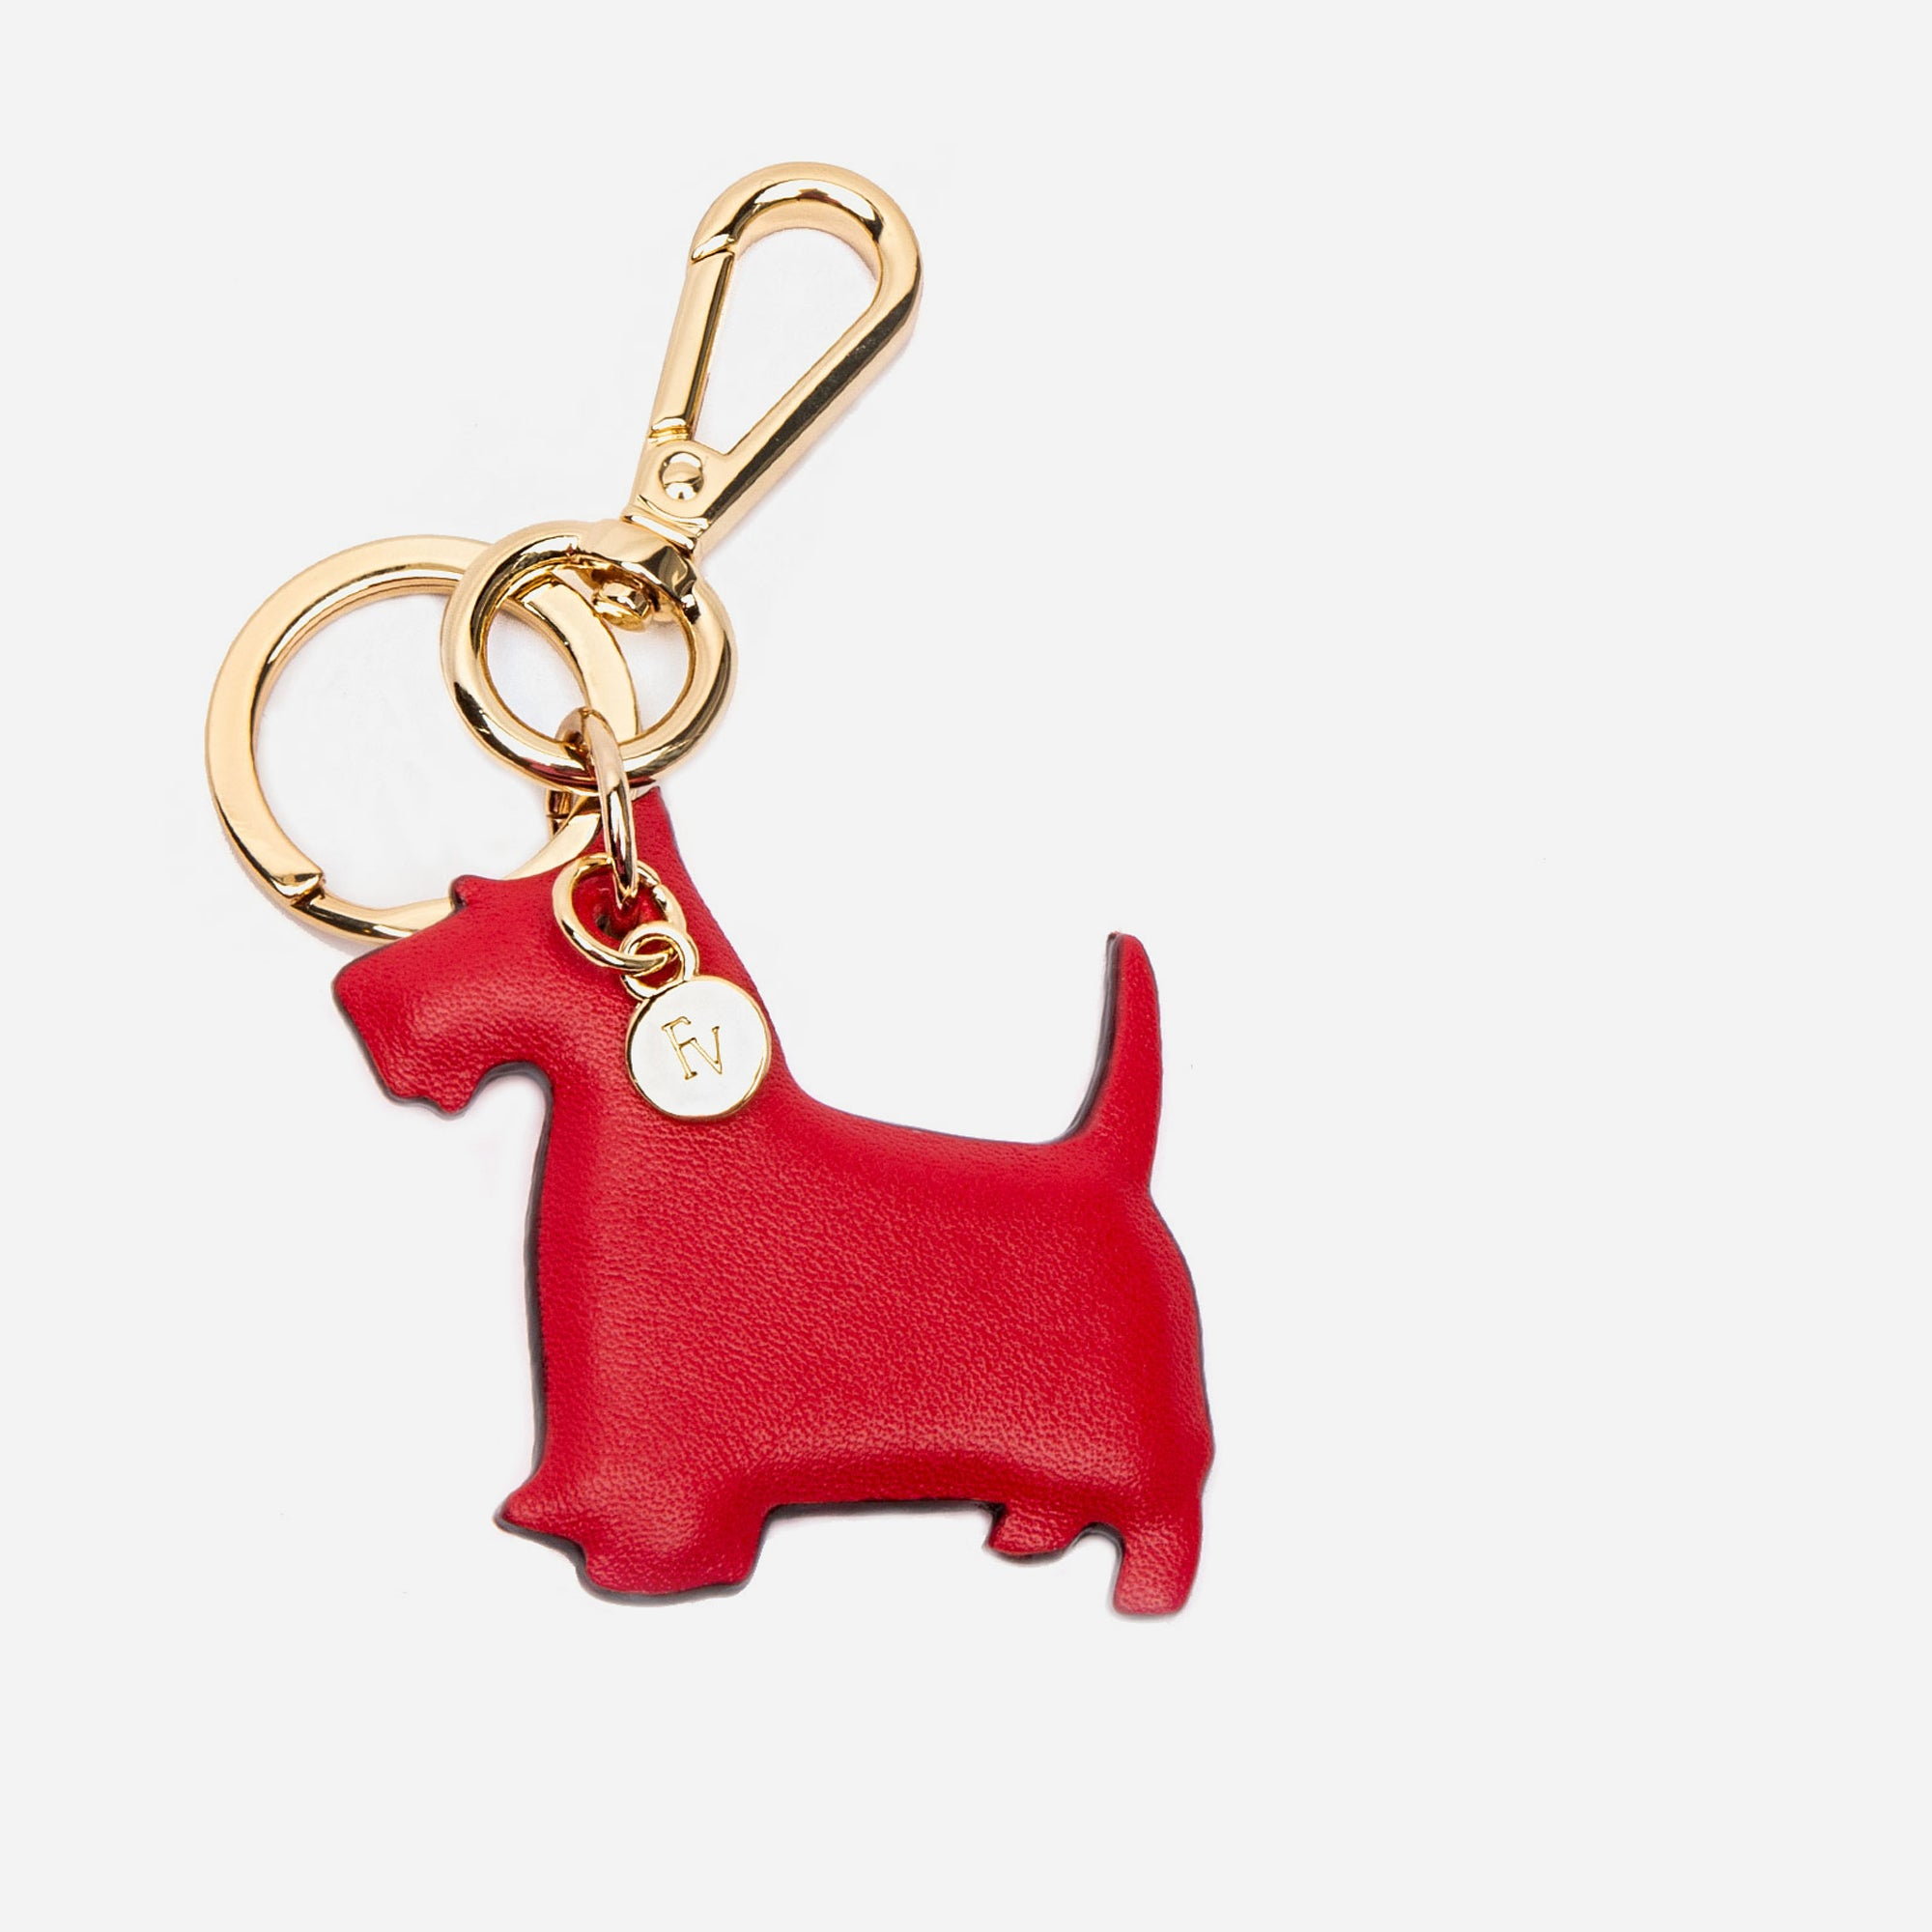 Scottish Terrier Keychain Red